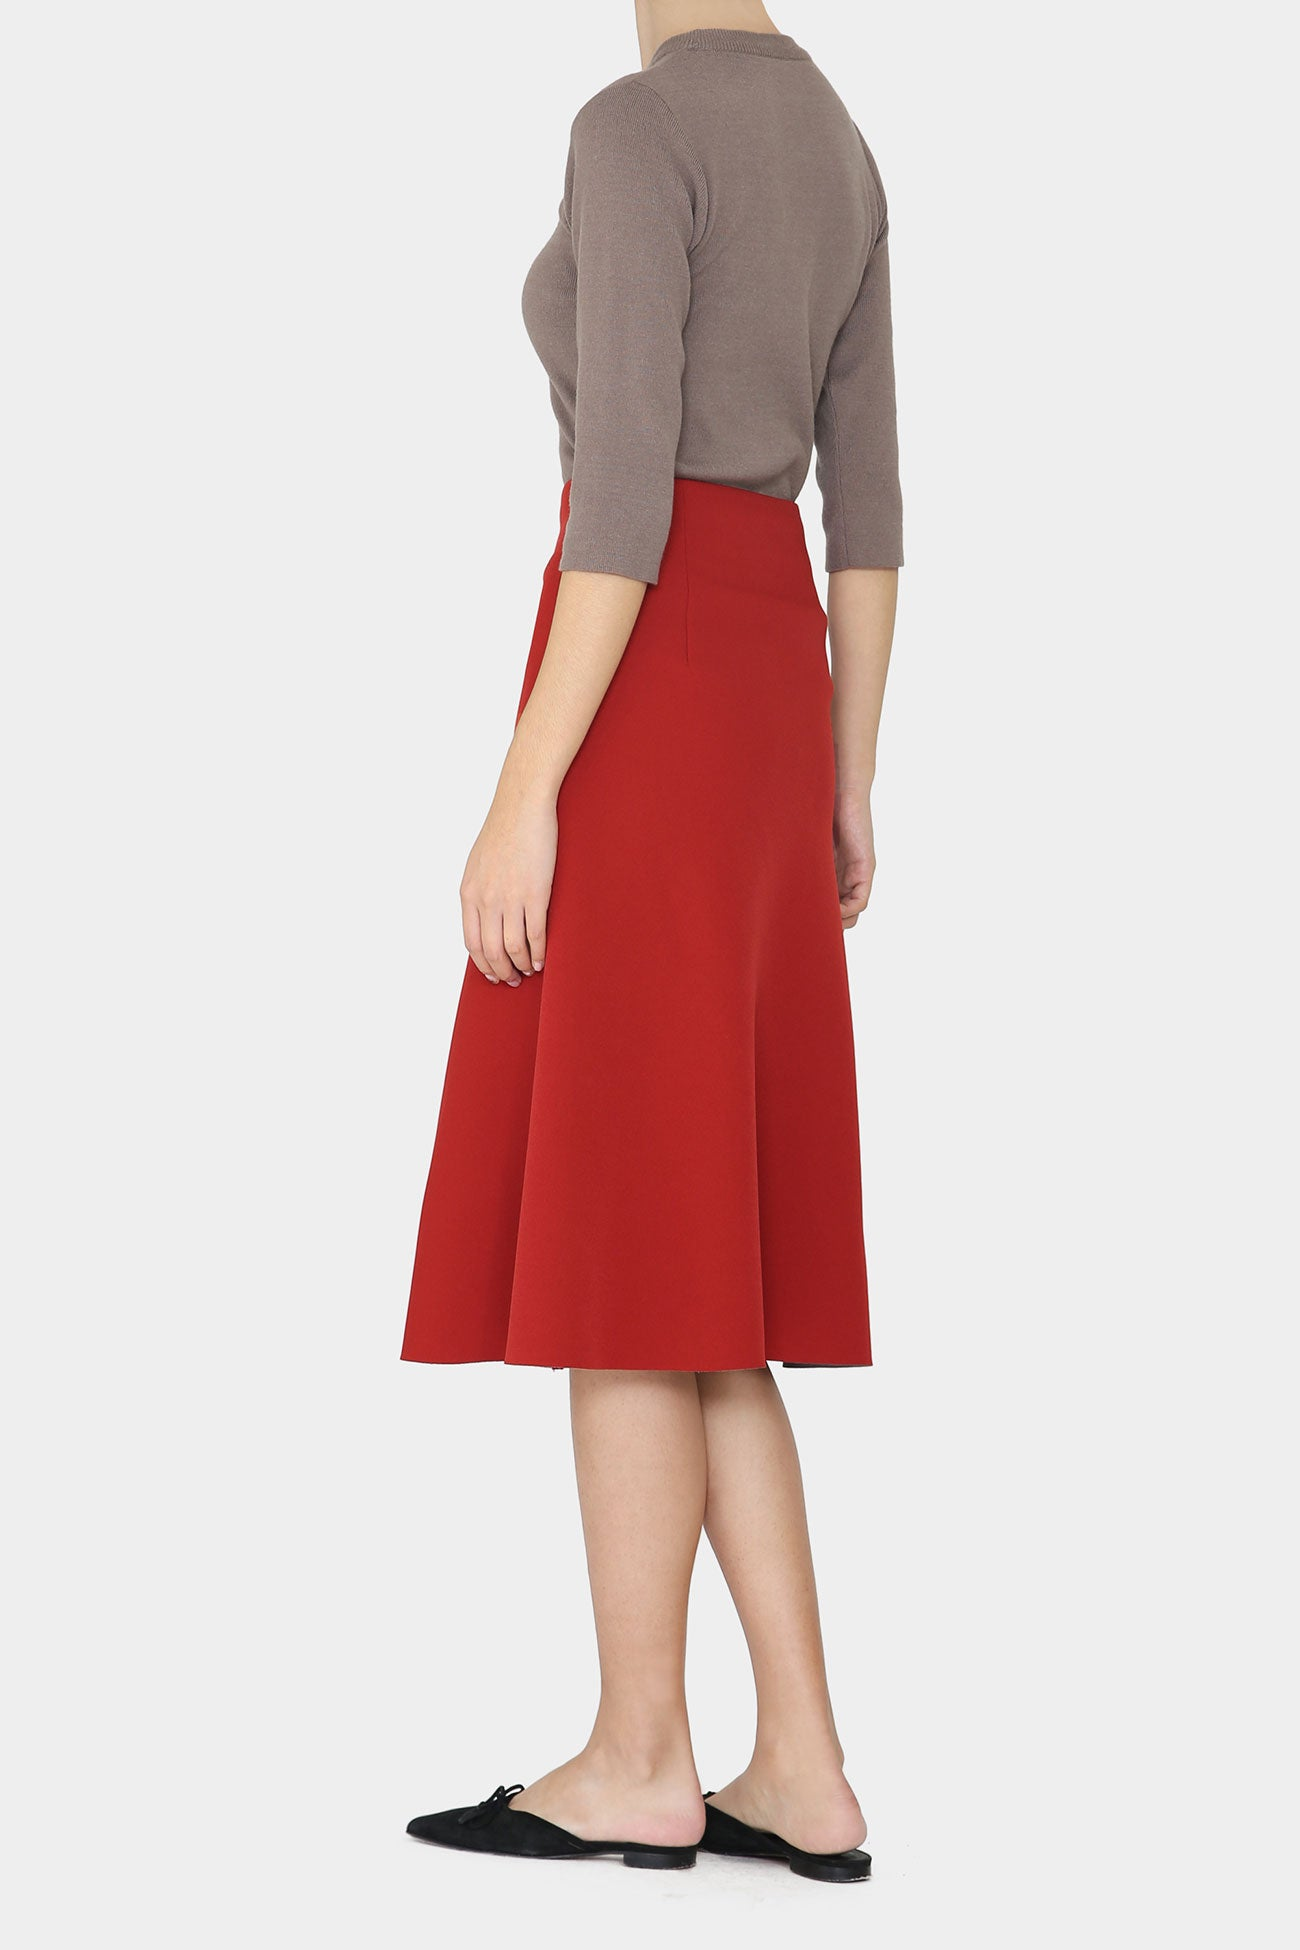 INDIAN RED PHOEBE DOUBLE FACED A-LINE SKIRT